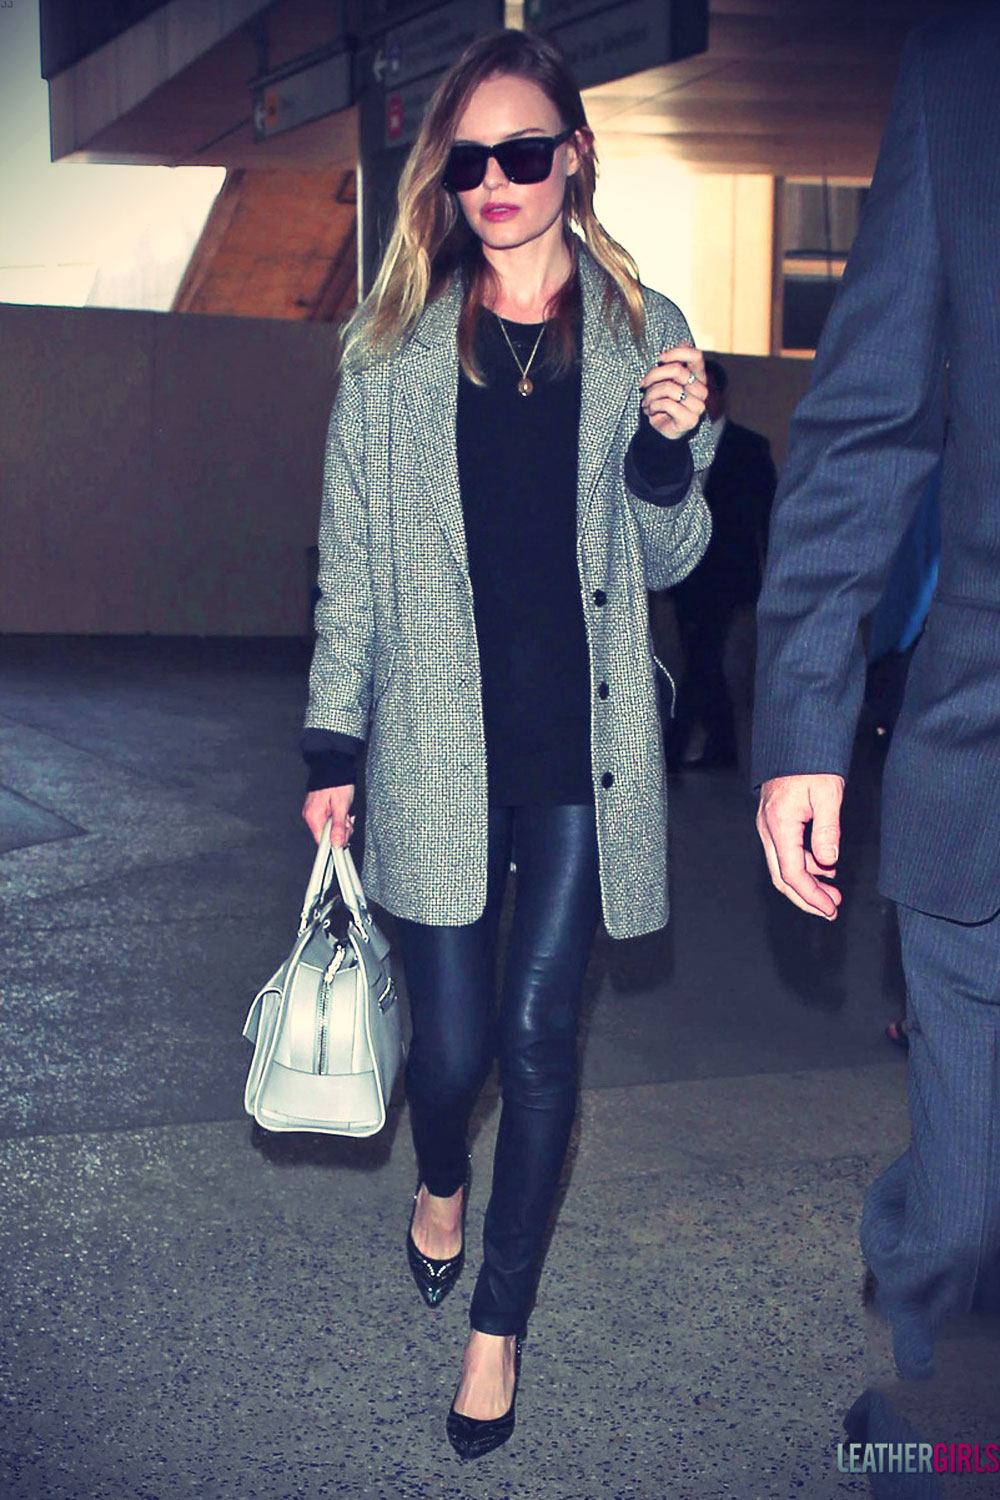 Kate Bosworth bundles up while exiting LAX Airport